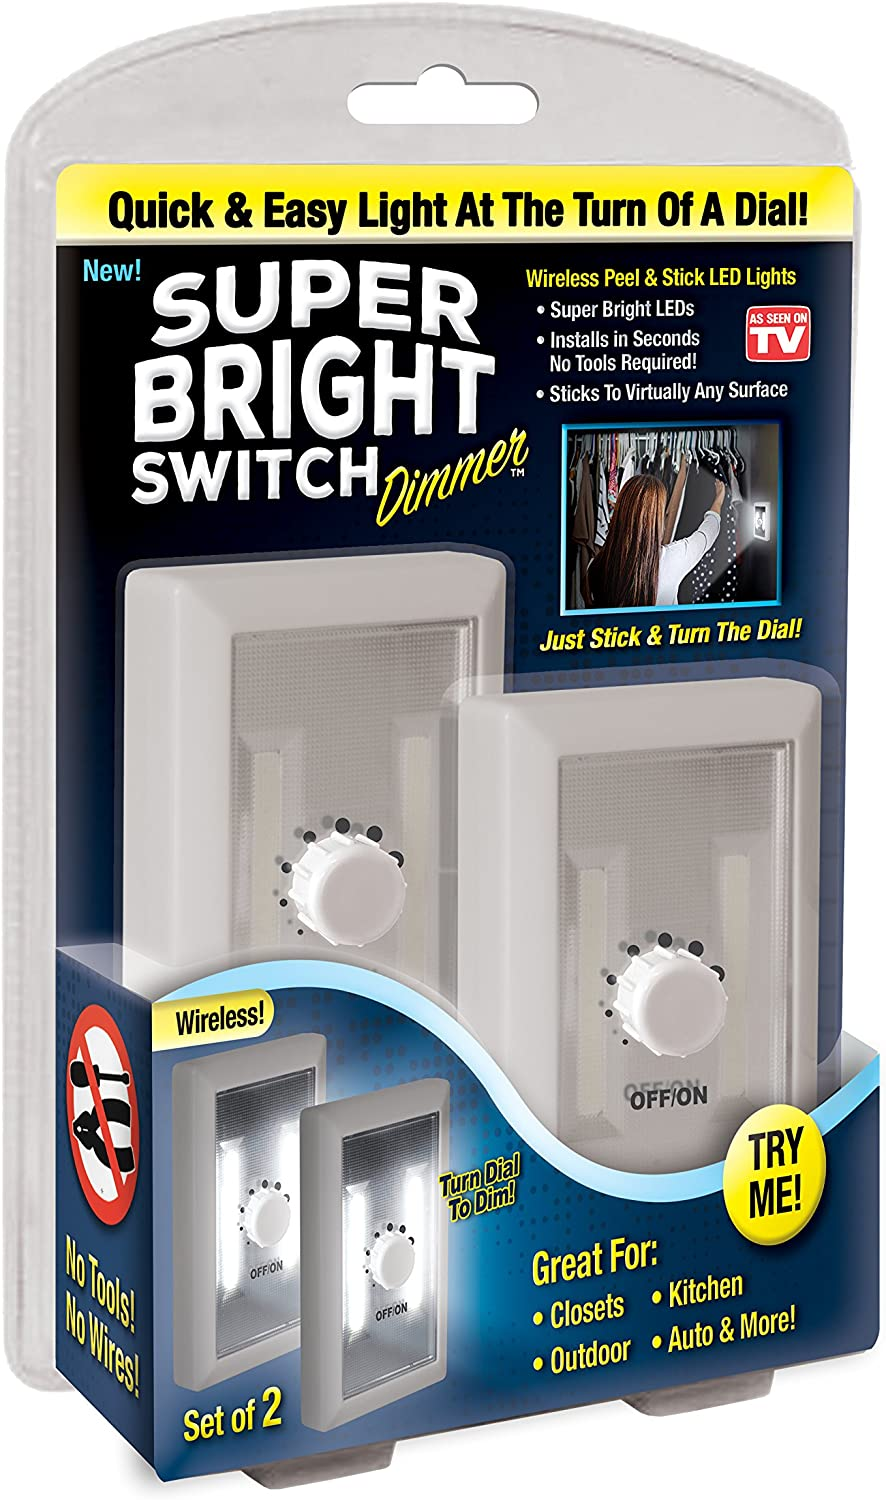 Under Cabinet Night Touch Shed Tap Light Utility Garage Kitchen Battery Operated Basement Super Bright Switch Dimmer: Wireless Peel and Stick LED Lights